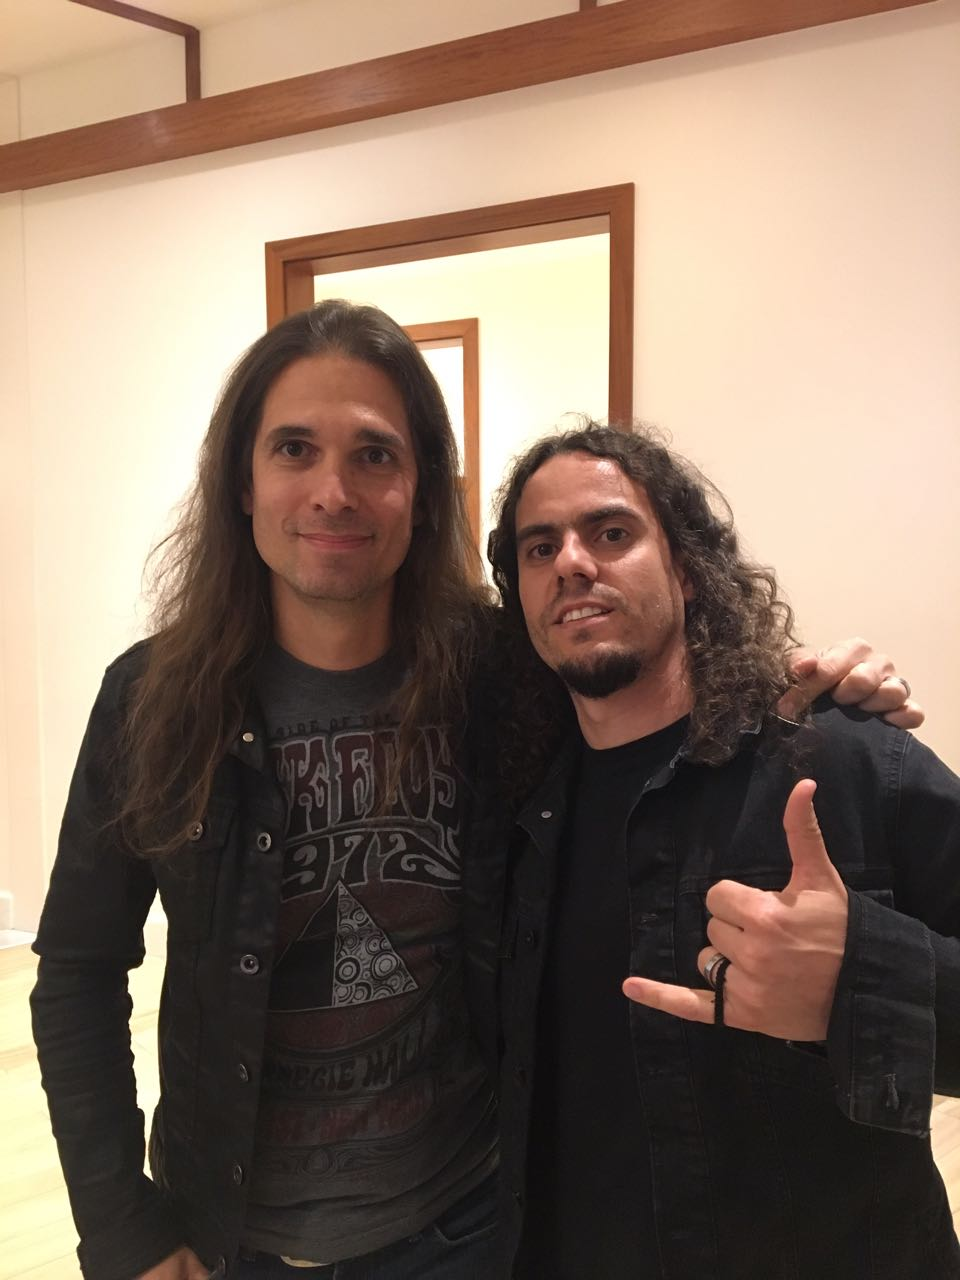 With Kiko Loureiro (Megadeth)